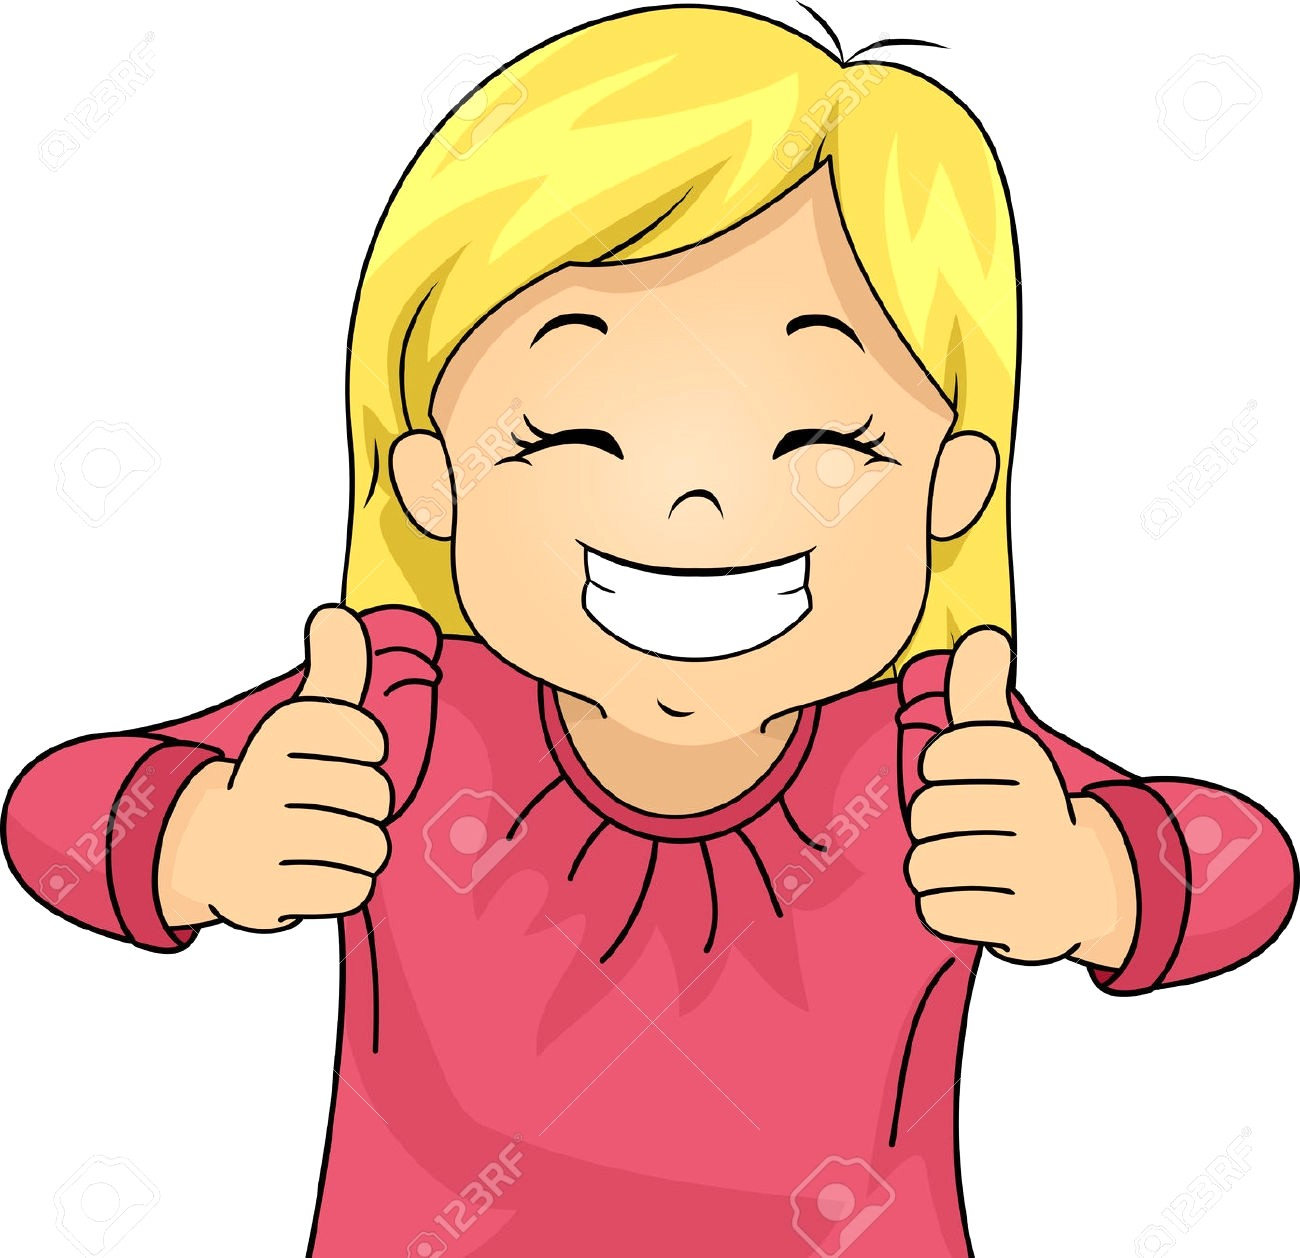 Girl smiling clipart » Clipart Station.